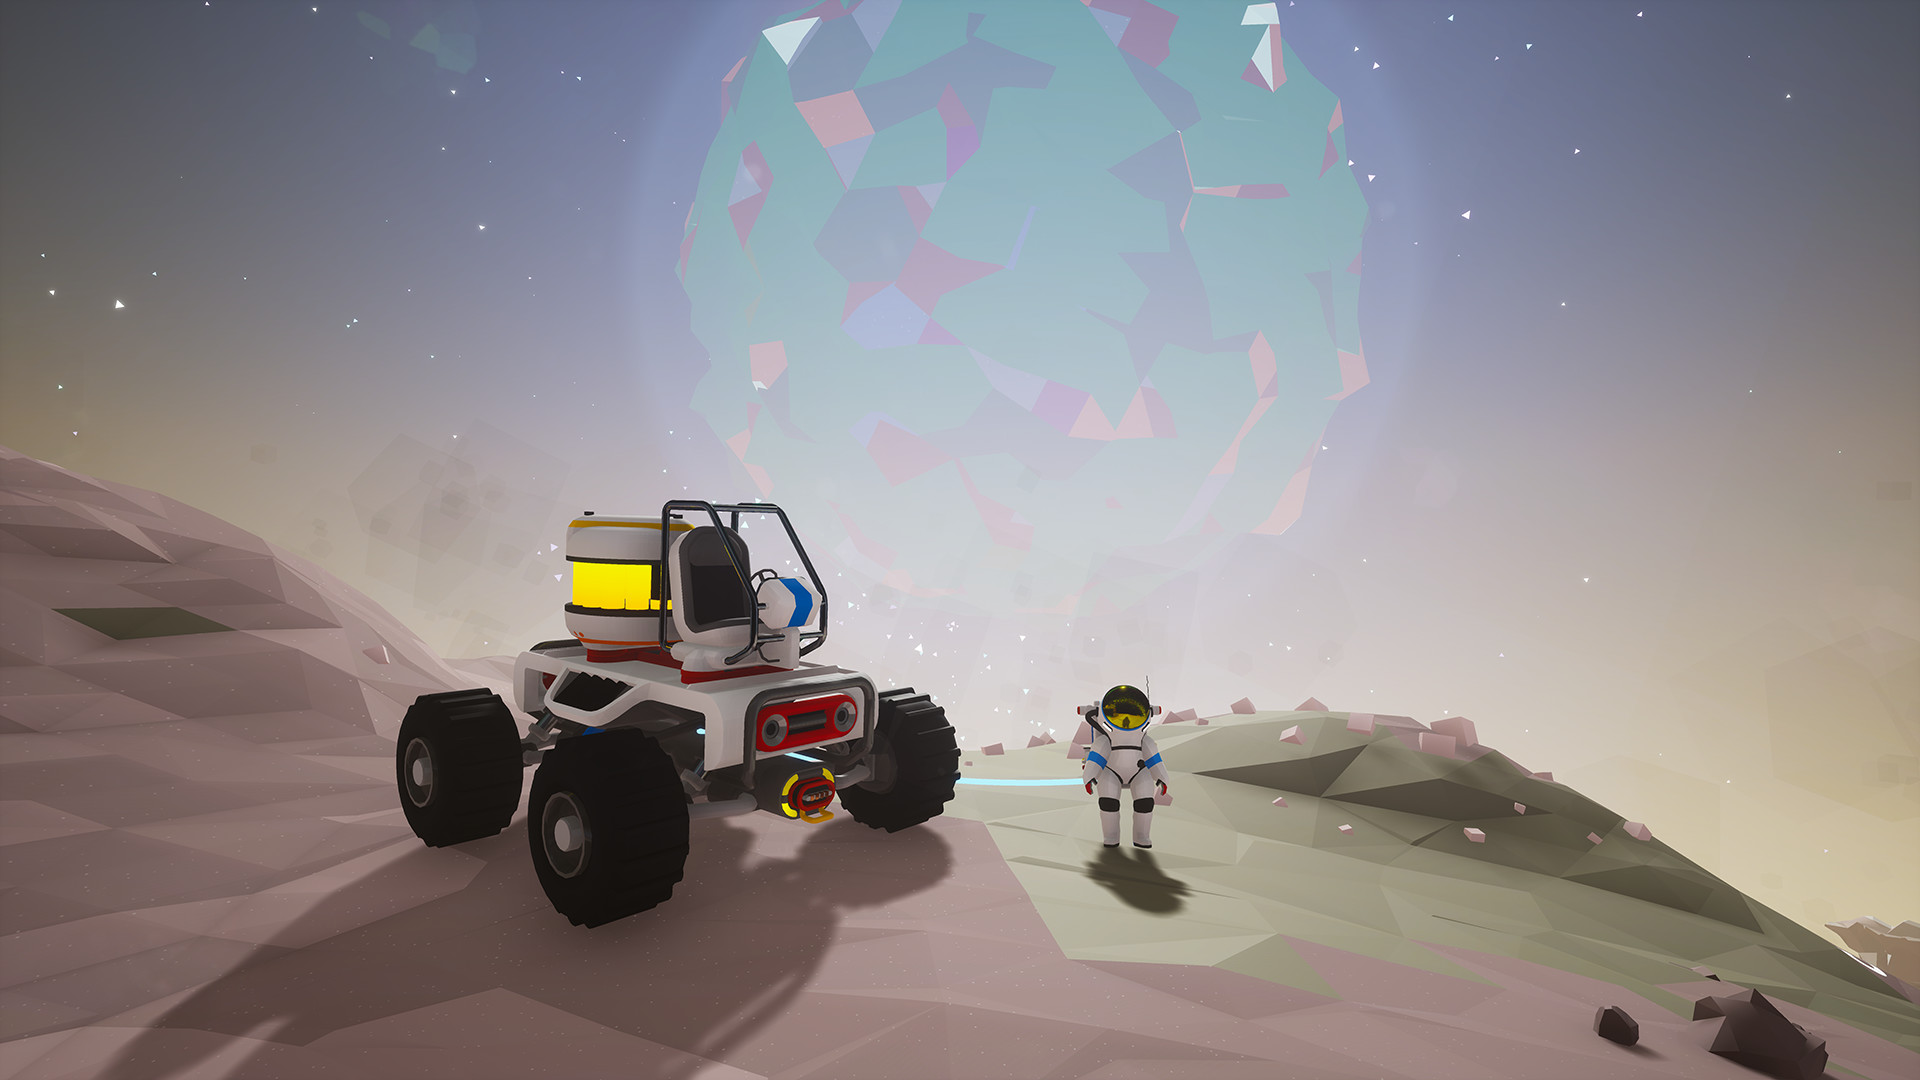 Astroneer release date announced for Xbox One and PC